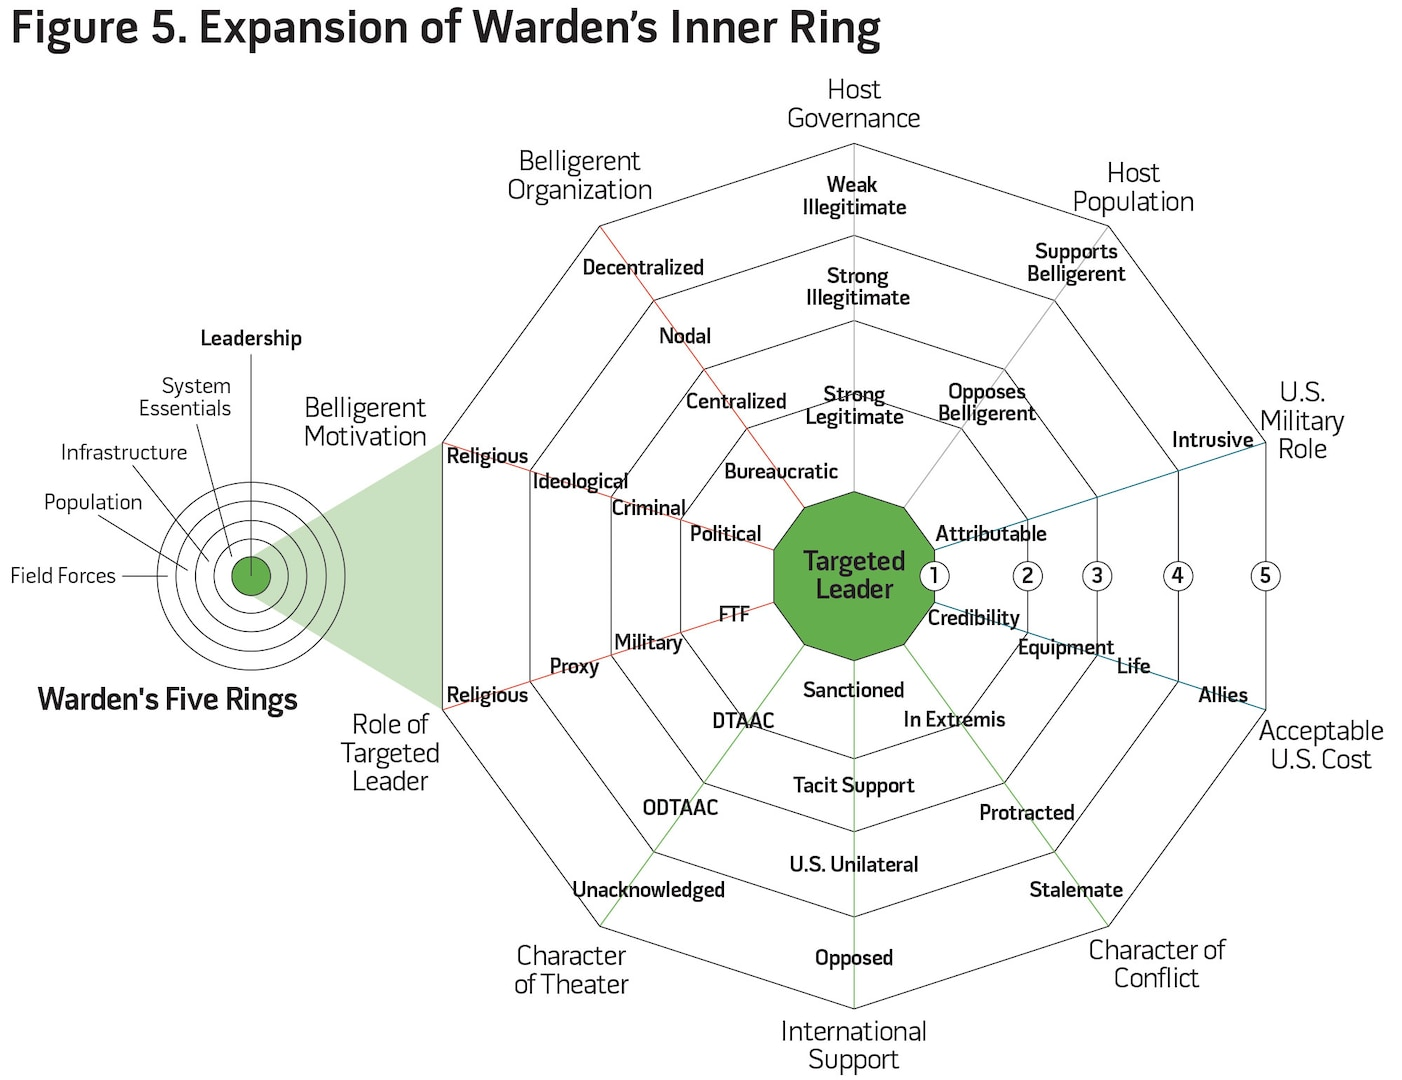 Figure 5. Expansion of Warden's Inner Ring